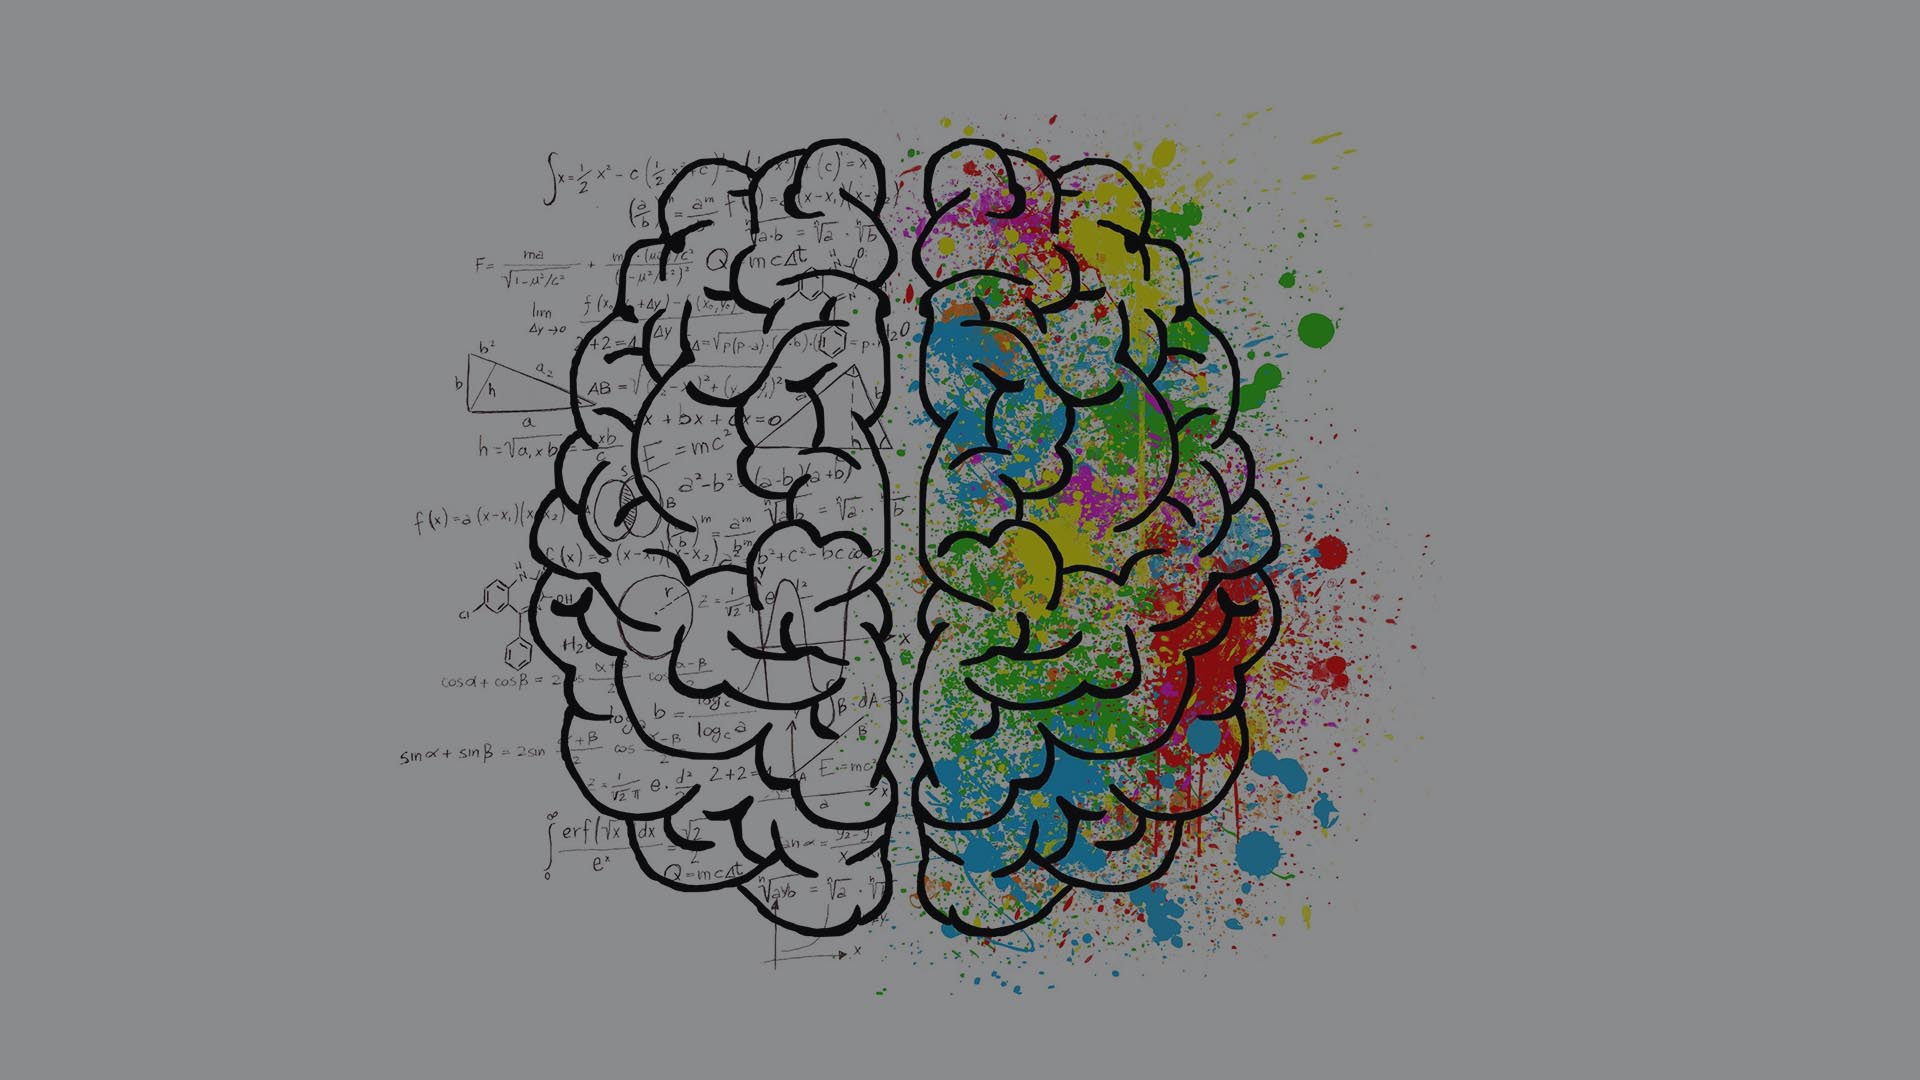 The relationship between Age, Gender and Emotional and Social Intelligence in Partnerships Building